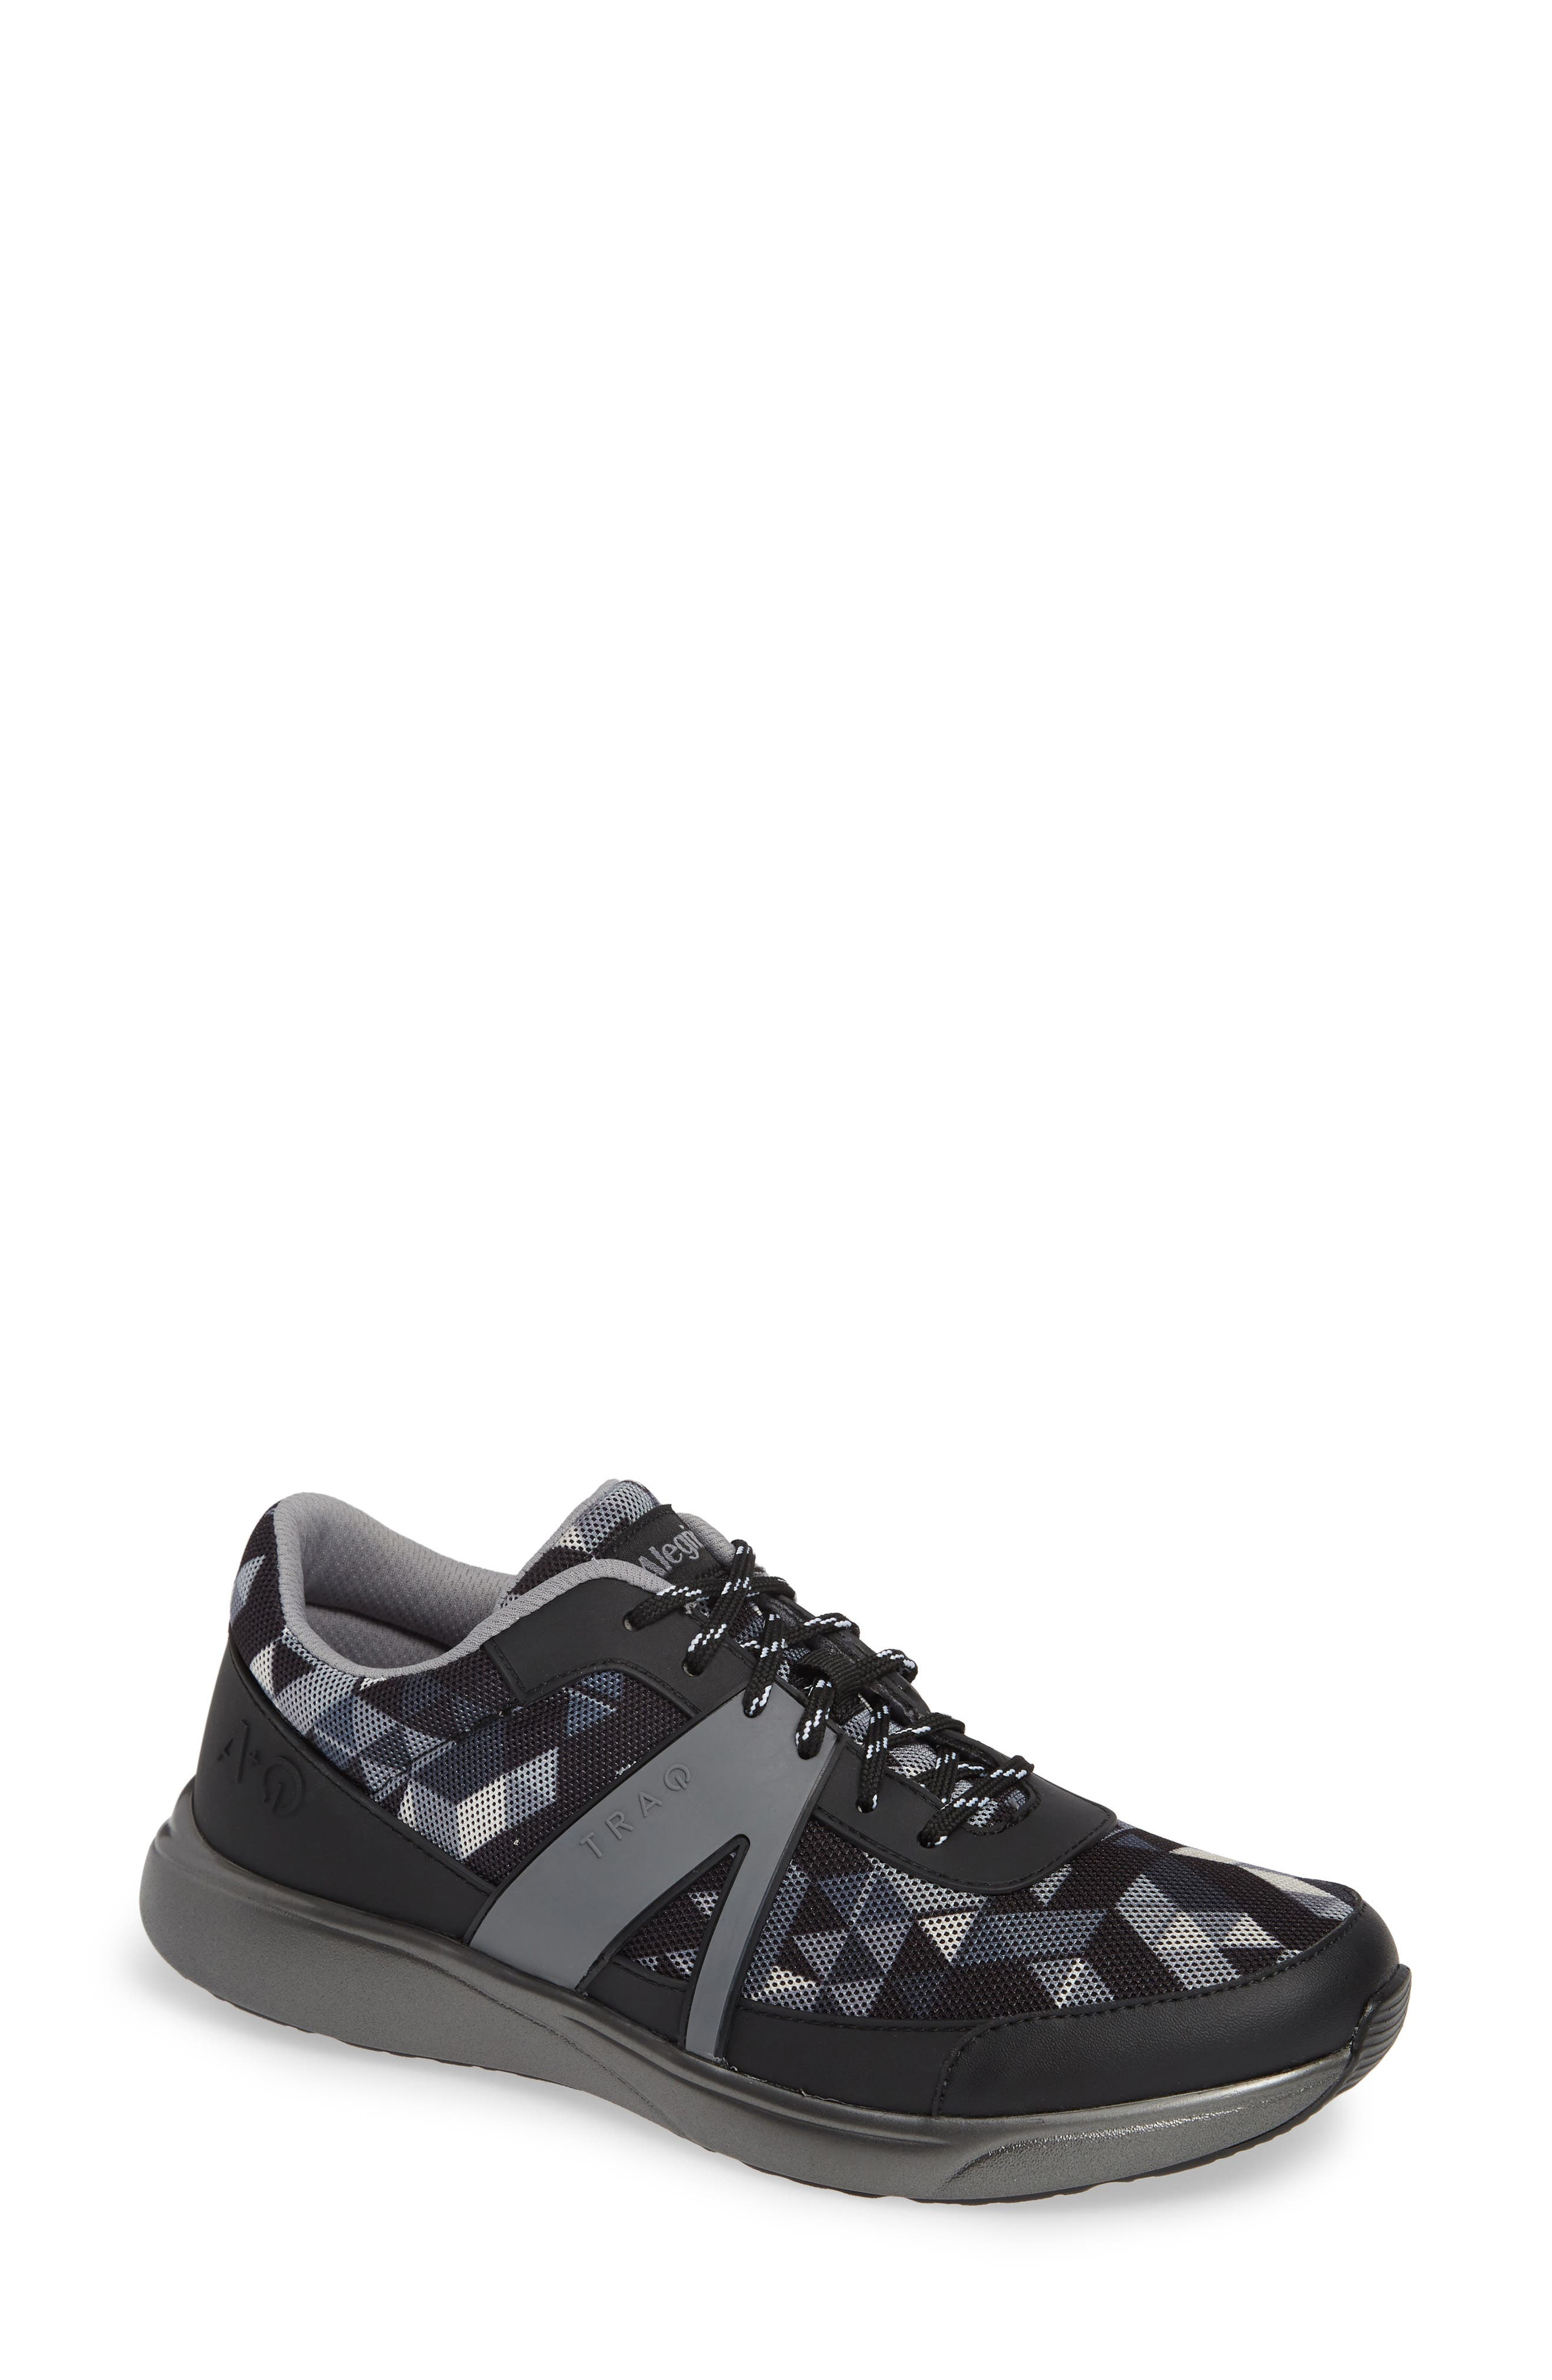 ALEGRIA, Qarma Sneaker, Main thumbnail 1, color, BLACK ANGLE LEATHER